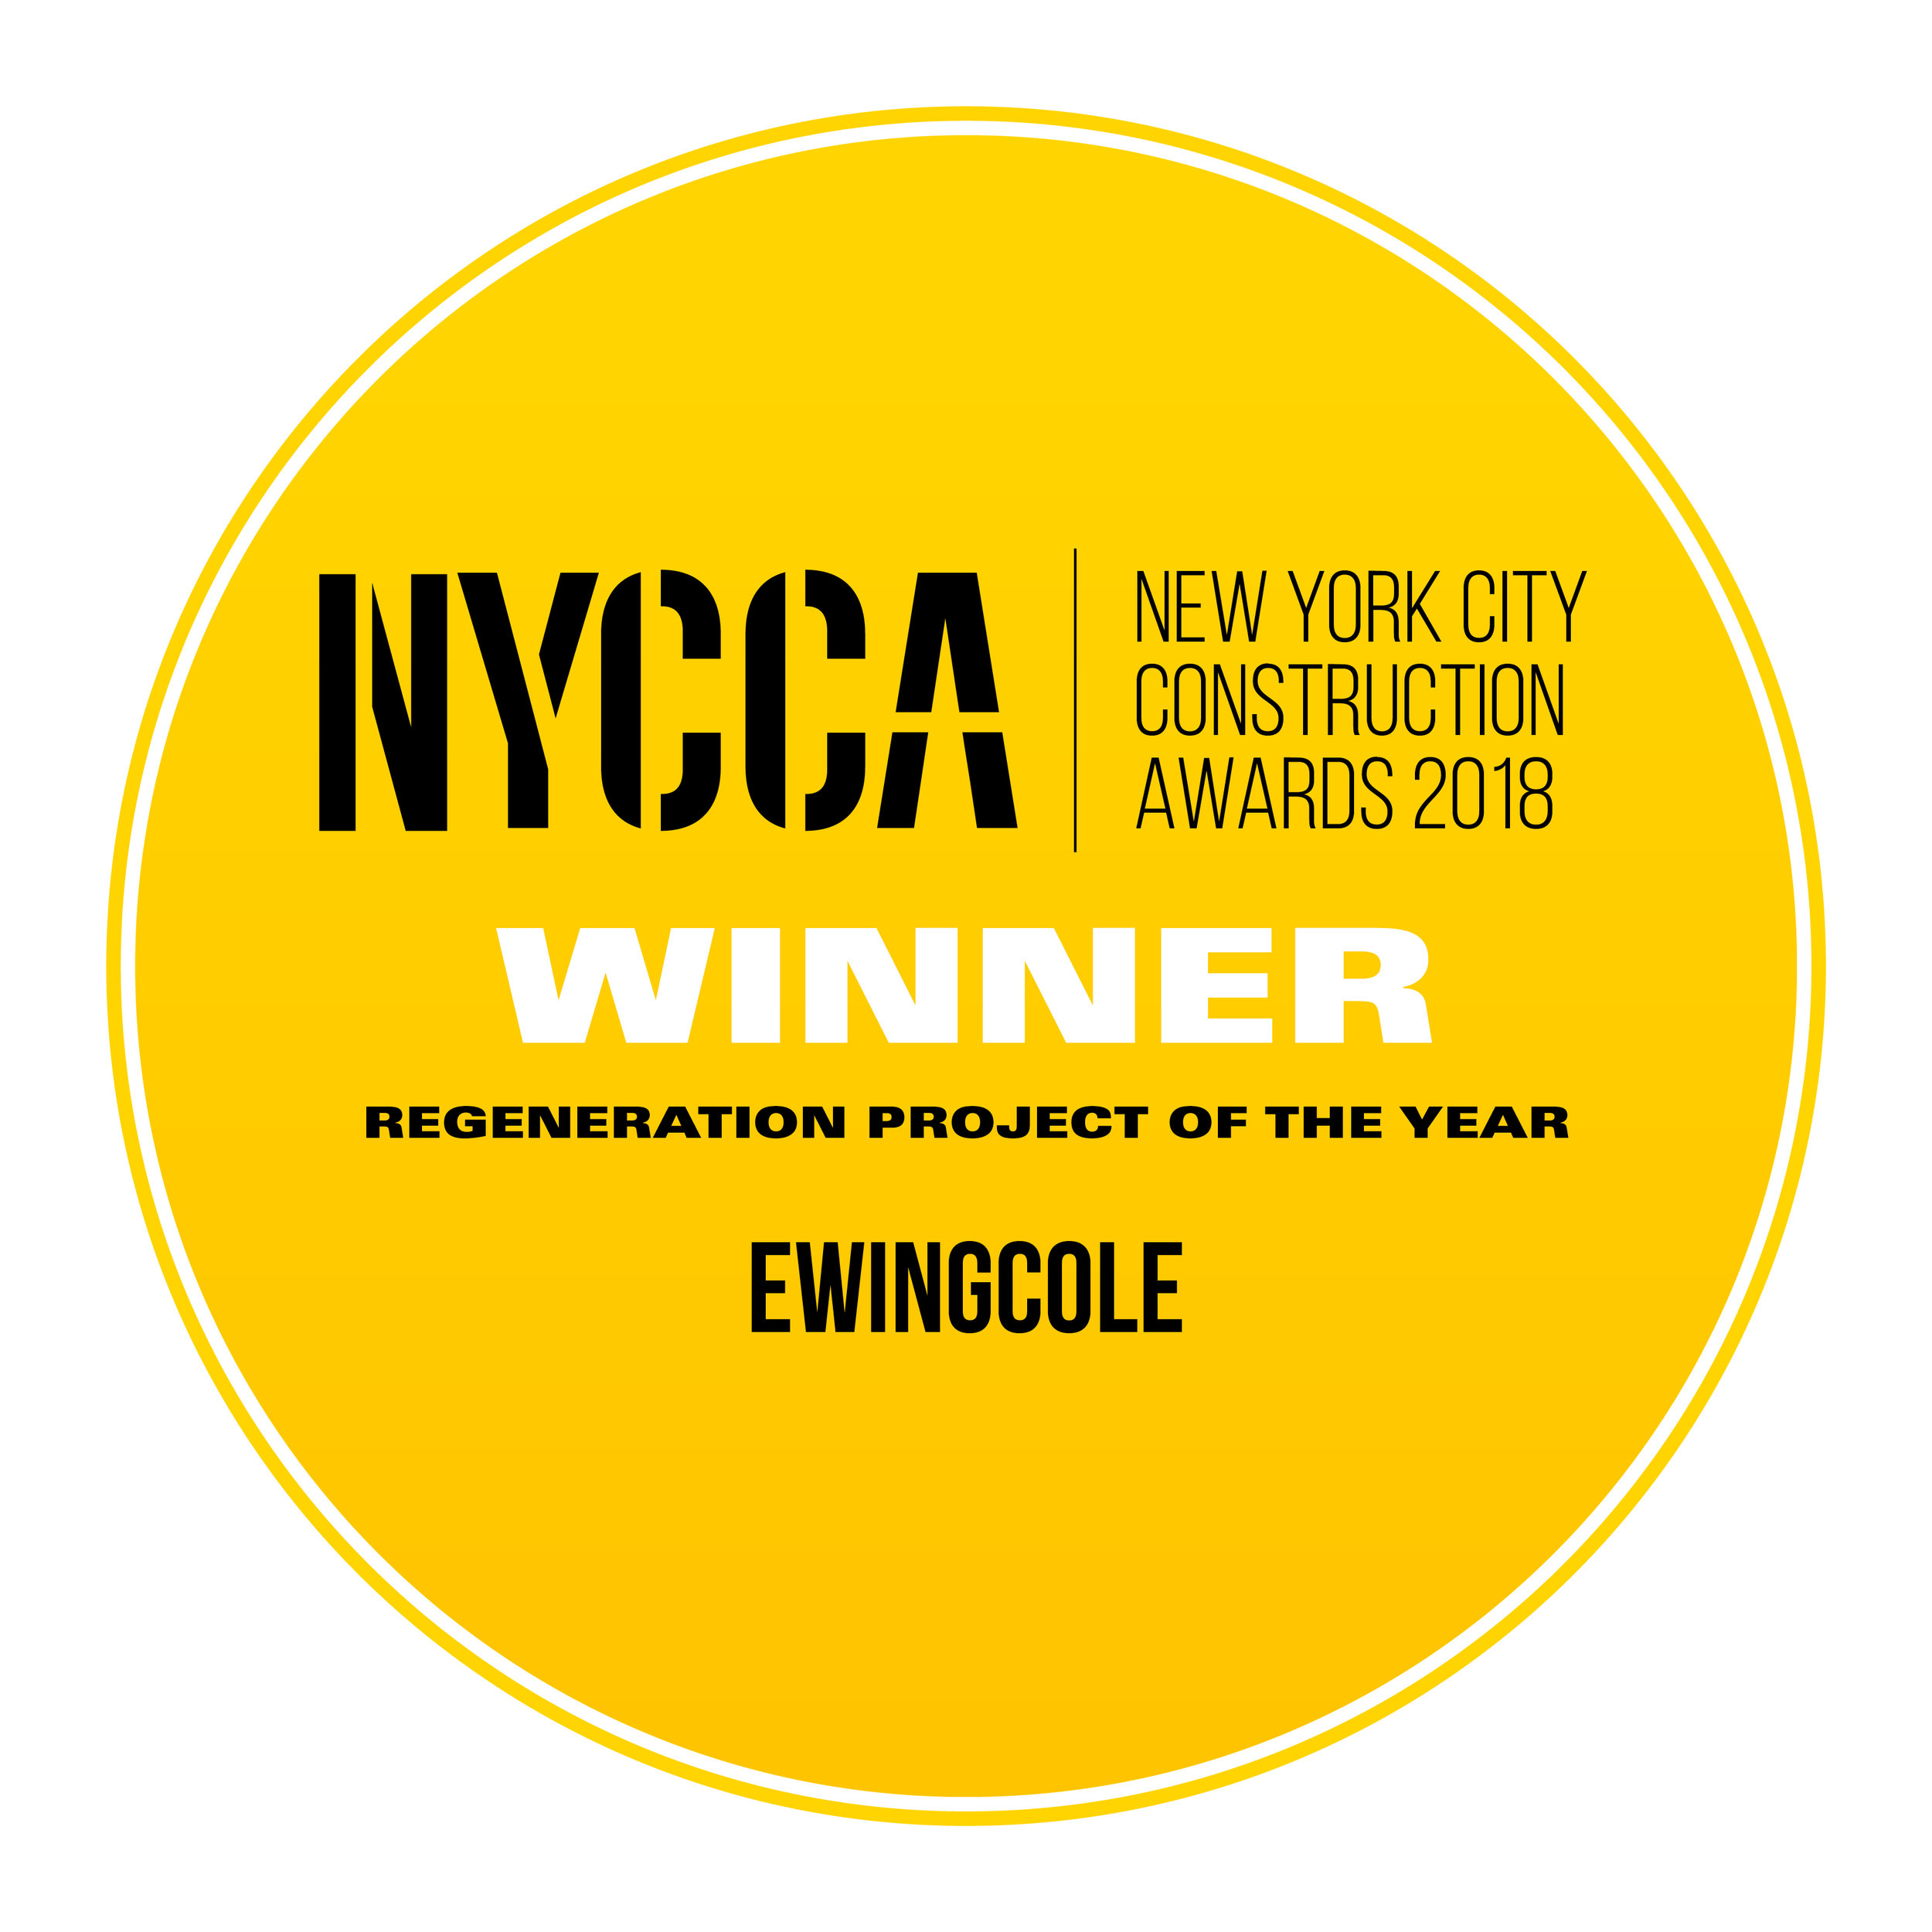 EwingCole - Regeneration Project of the Year